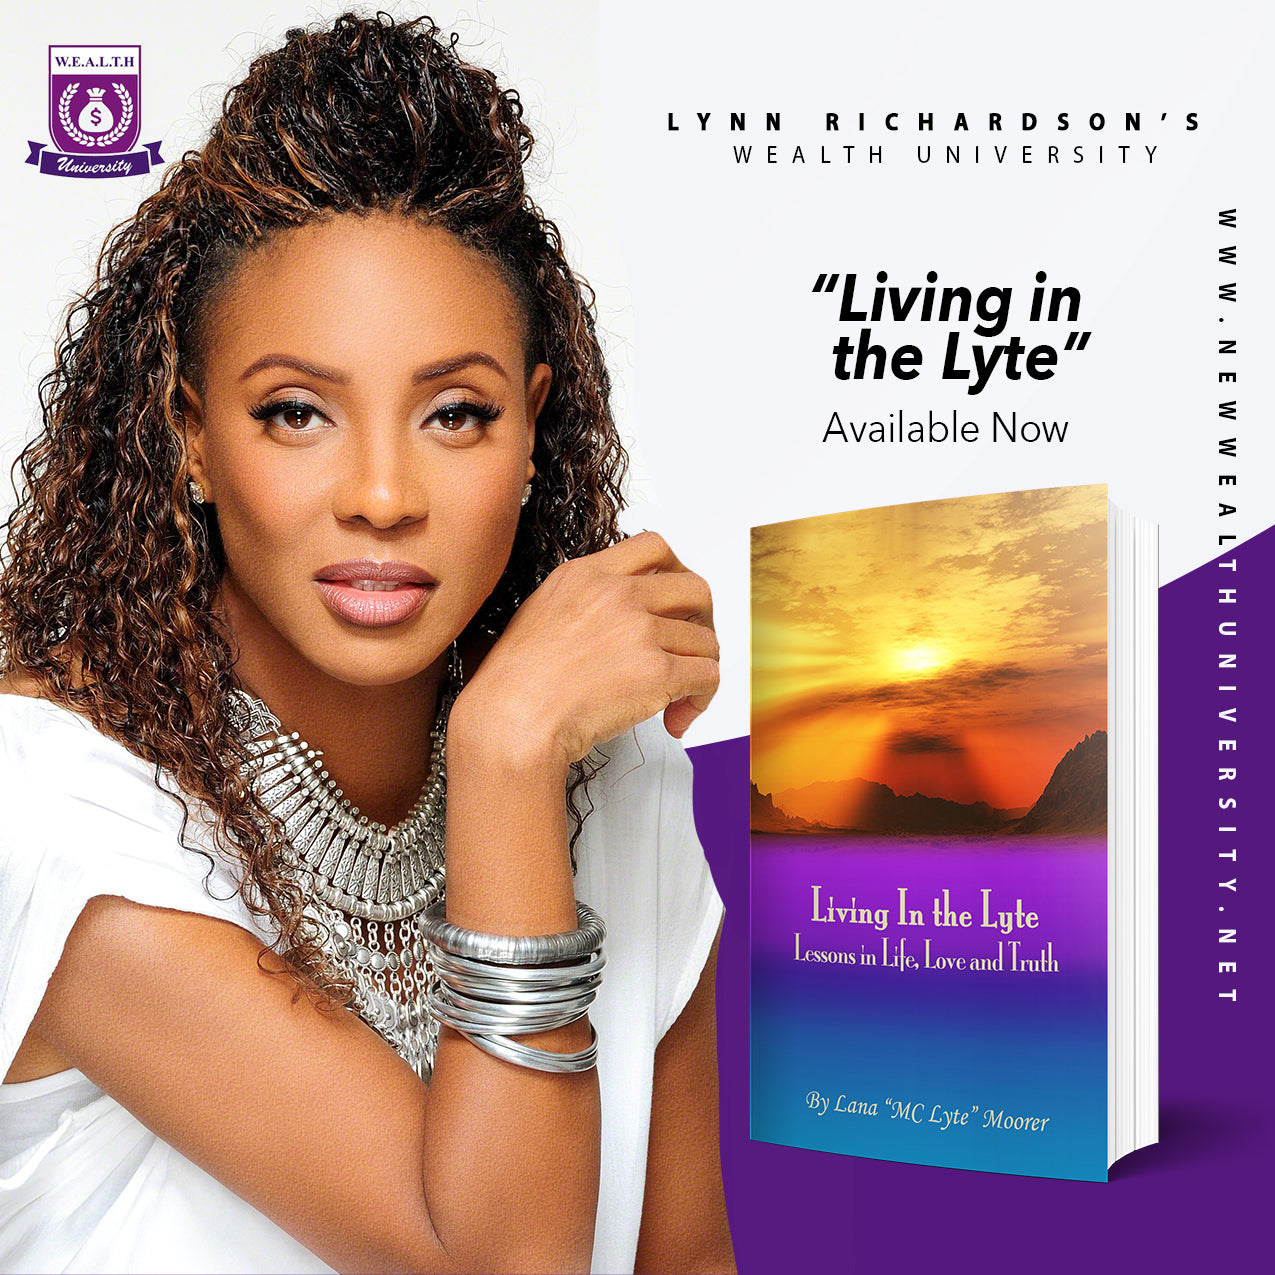 Living in the Lyte:  Lessons in Life, Love and Truth